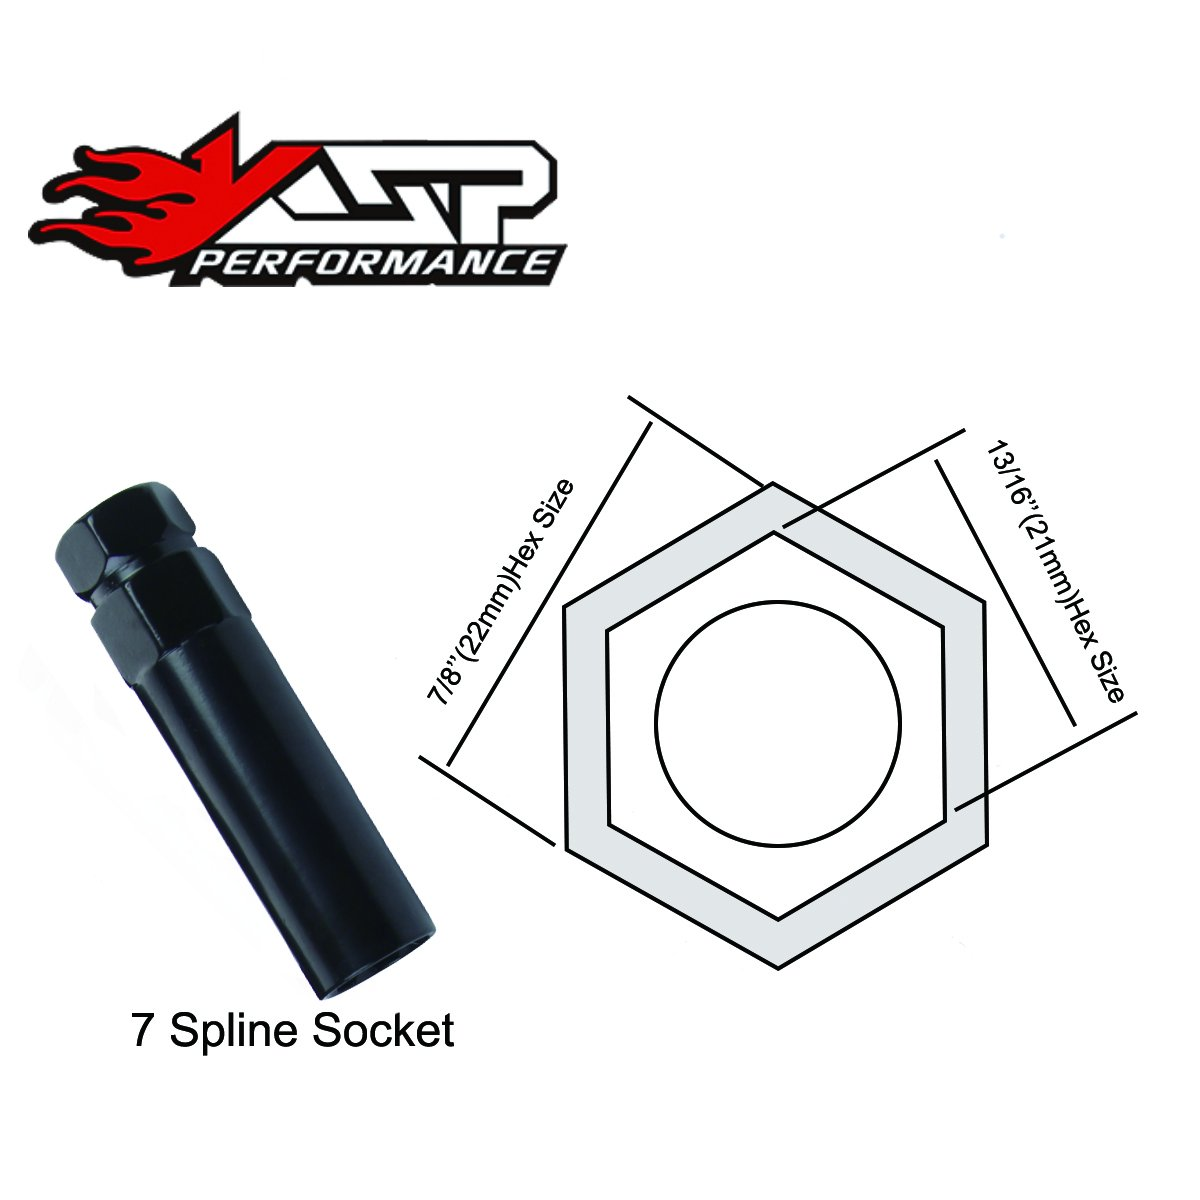 M14x1.5 Thread Pitch 24PC KSP 14mmx1.5 ,60 Degree Conical Cone Seat Wheel Lug Nuts,Closed End 7 Spilne with 2 Keys 6 Lugs Trucks Goldenlion 4333086117